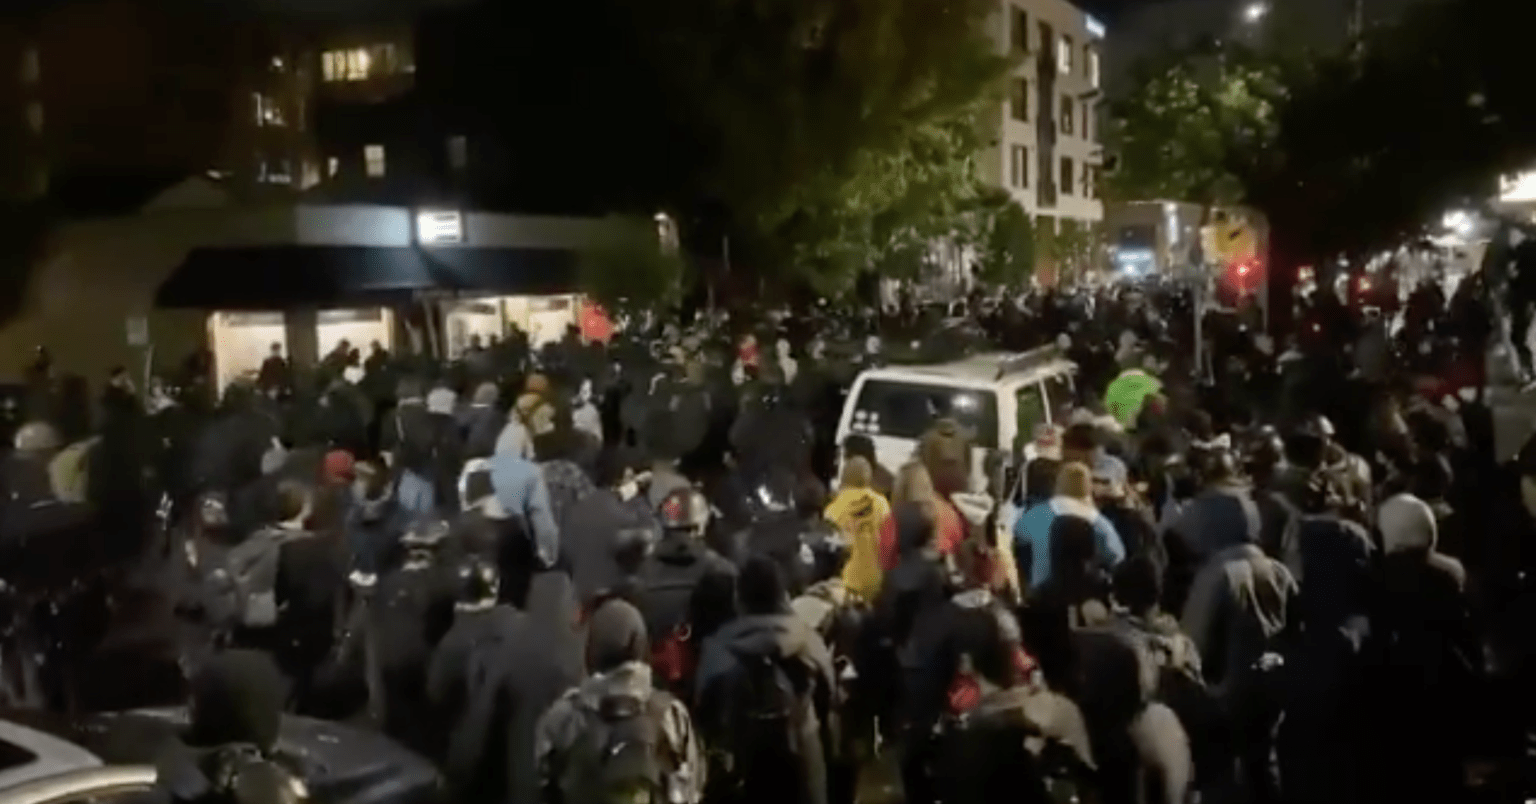 Armed Antifa and Black Lives Matter supporters shut down roads in residential areas of Portland: 'Come out of your house'